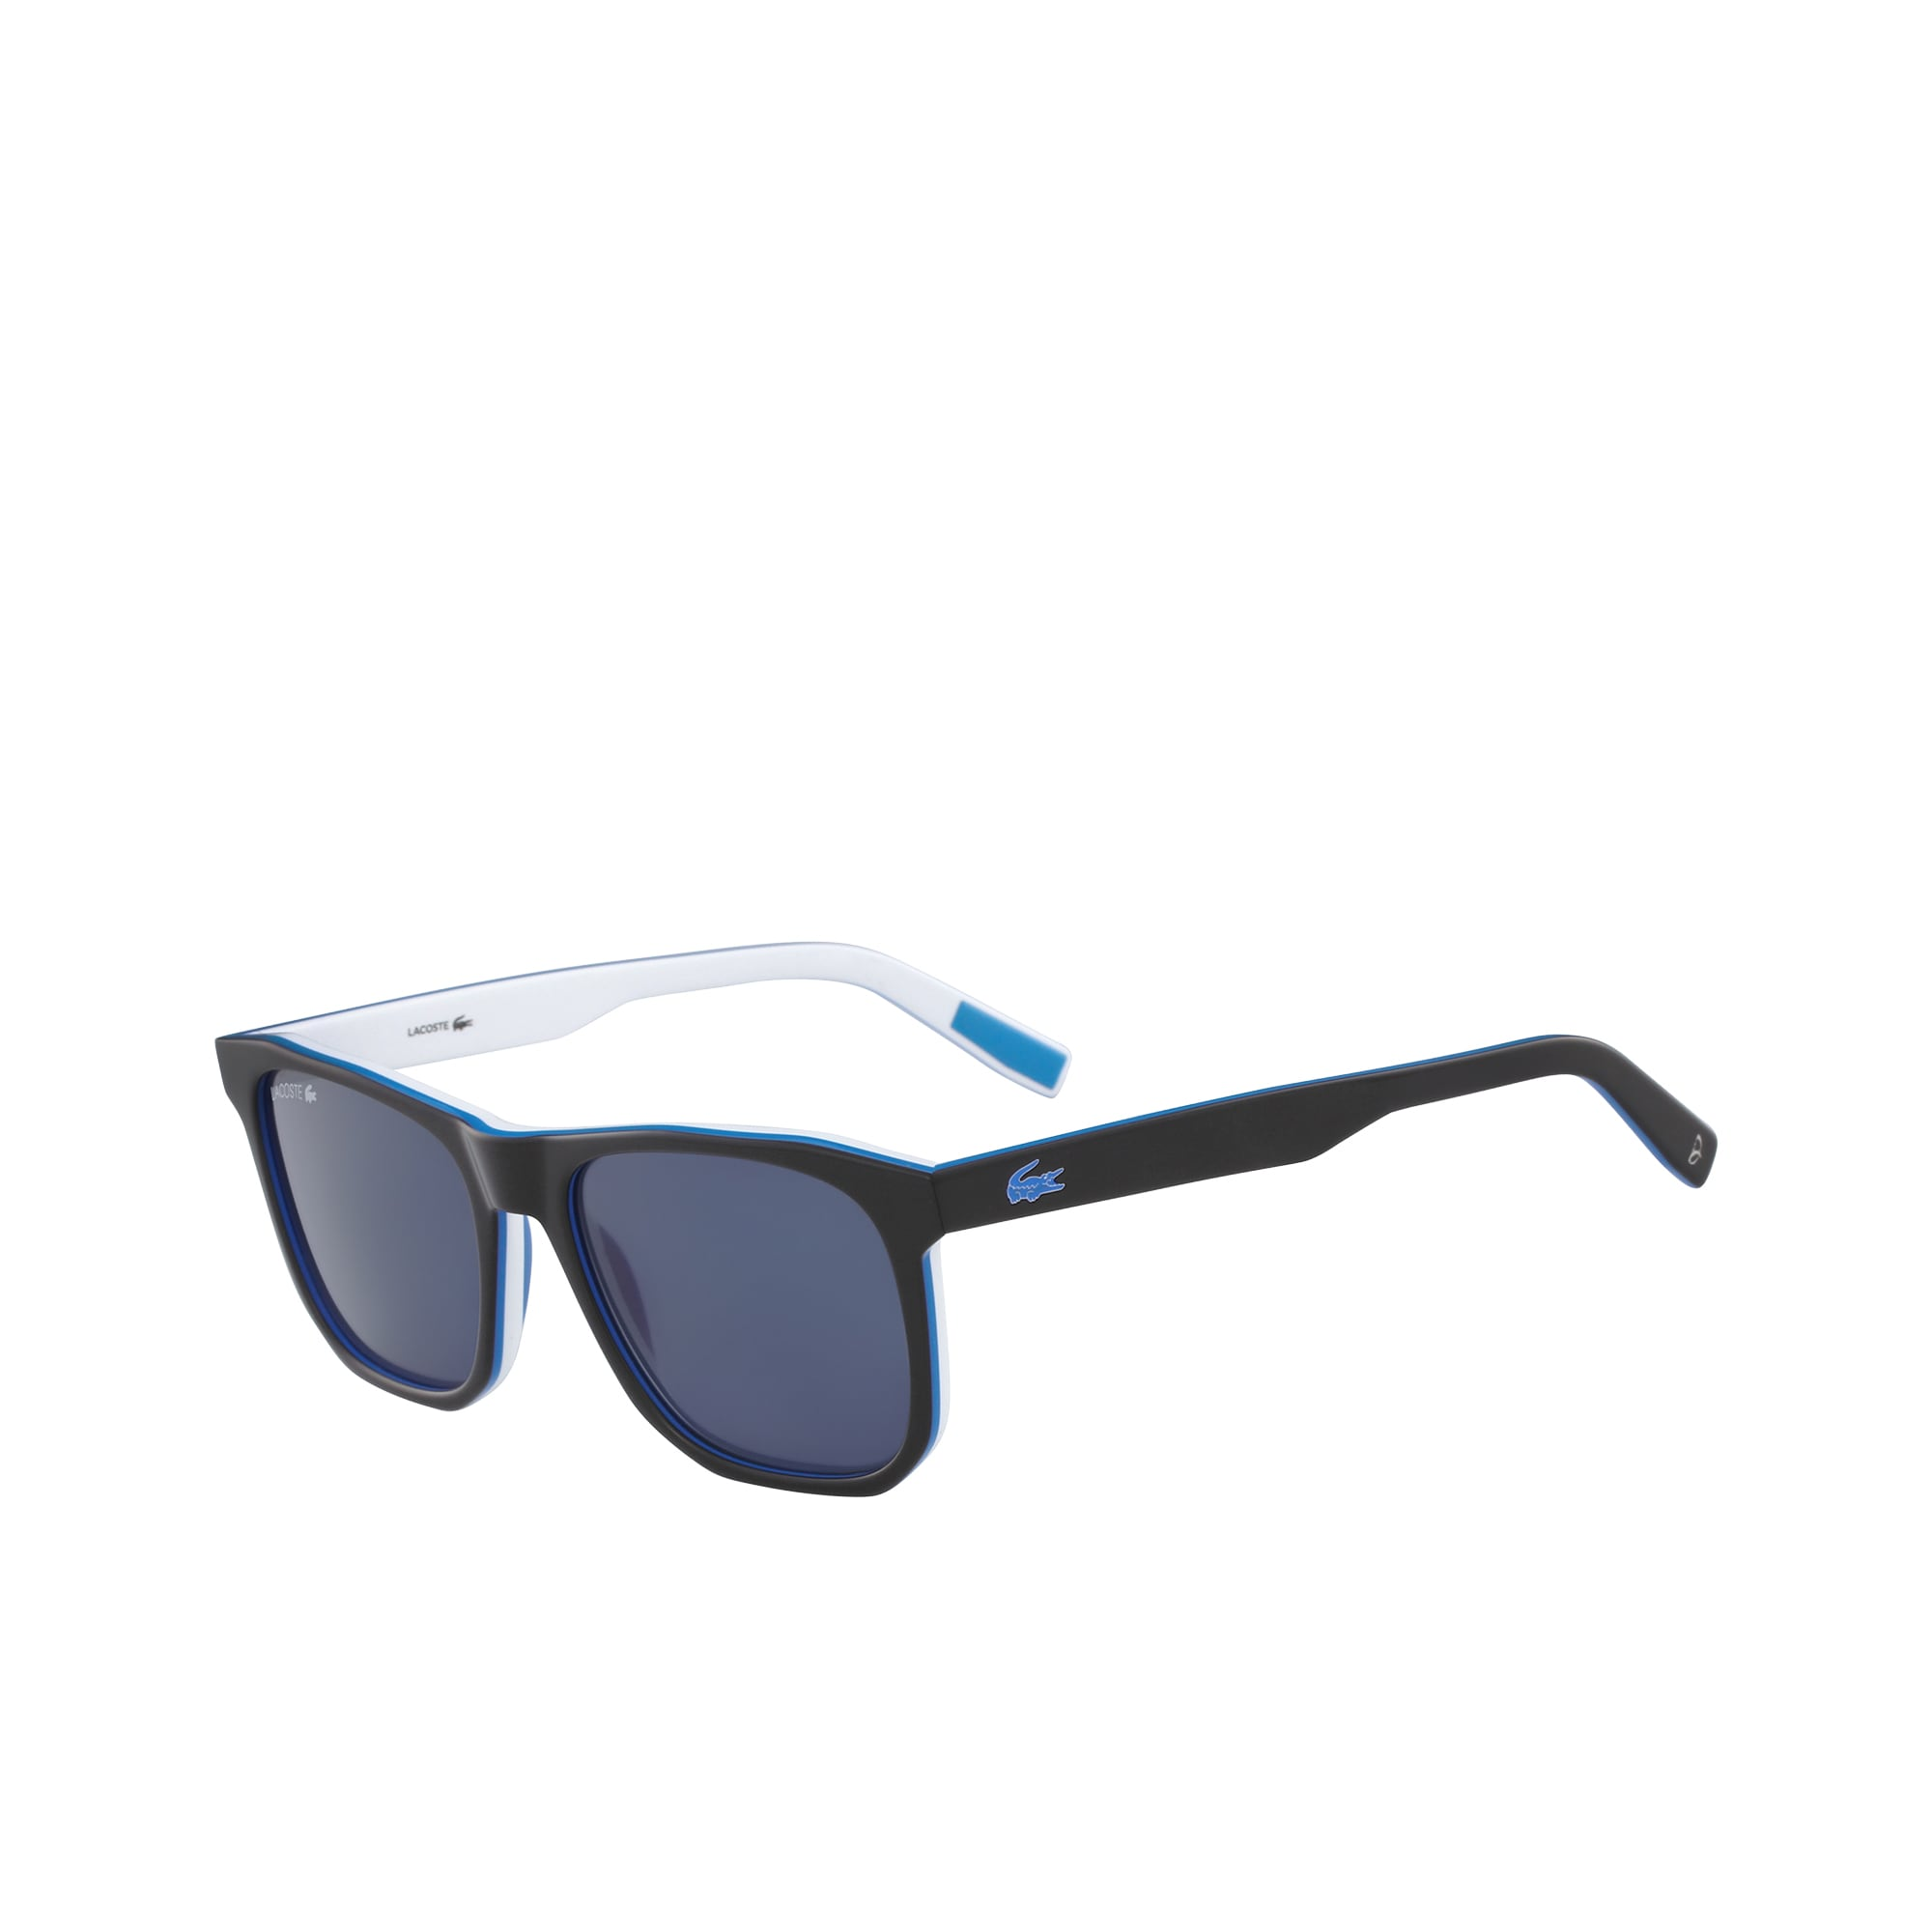 LT12 Sunglasses in Acetate Novak Djokovic Edition